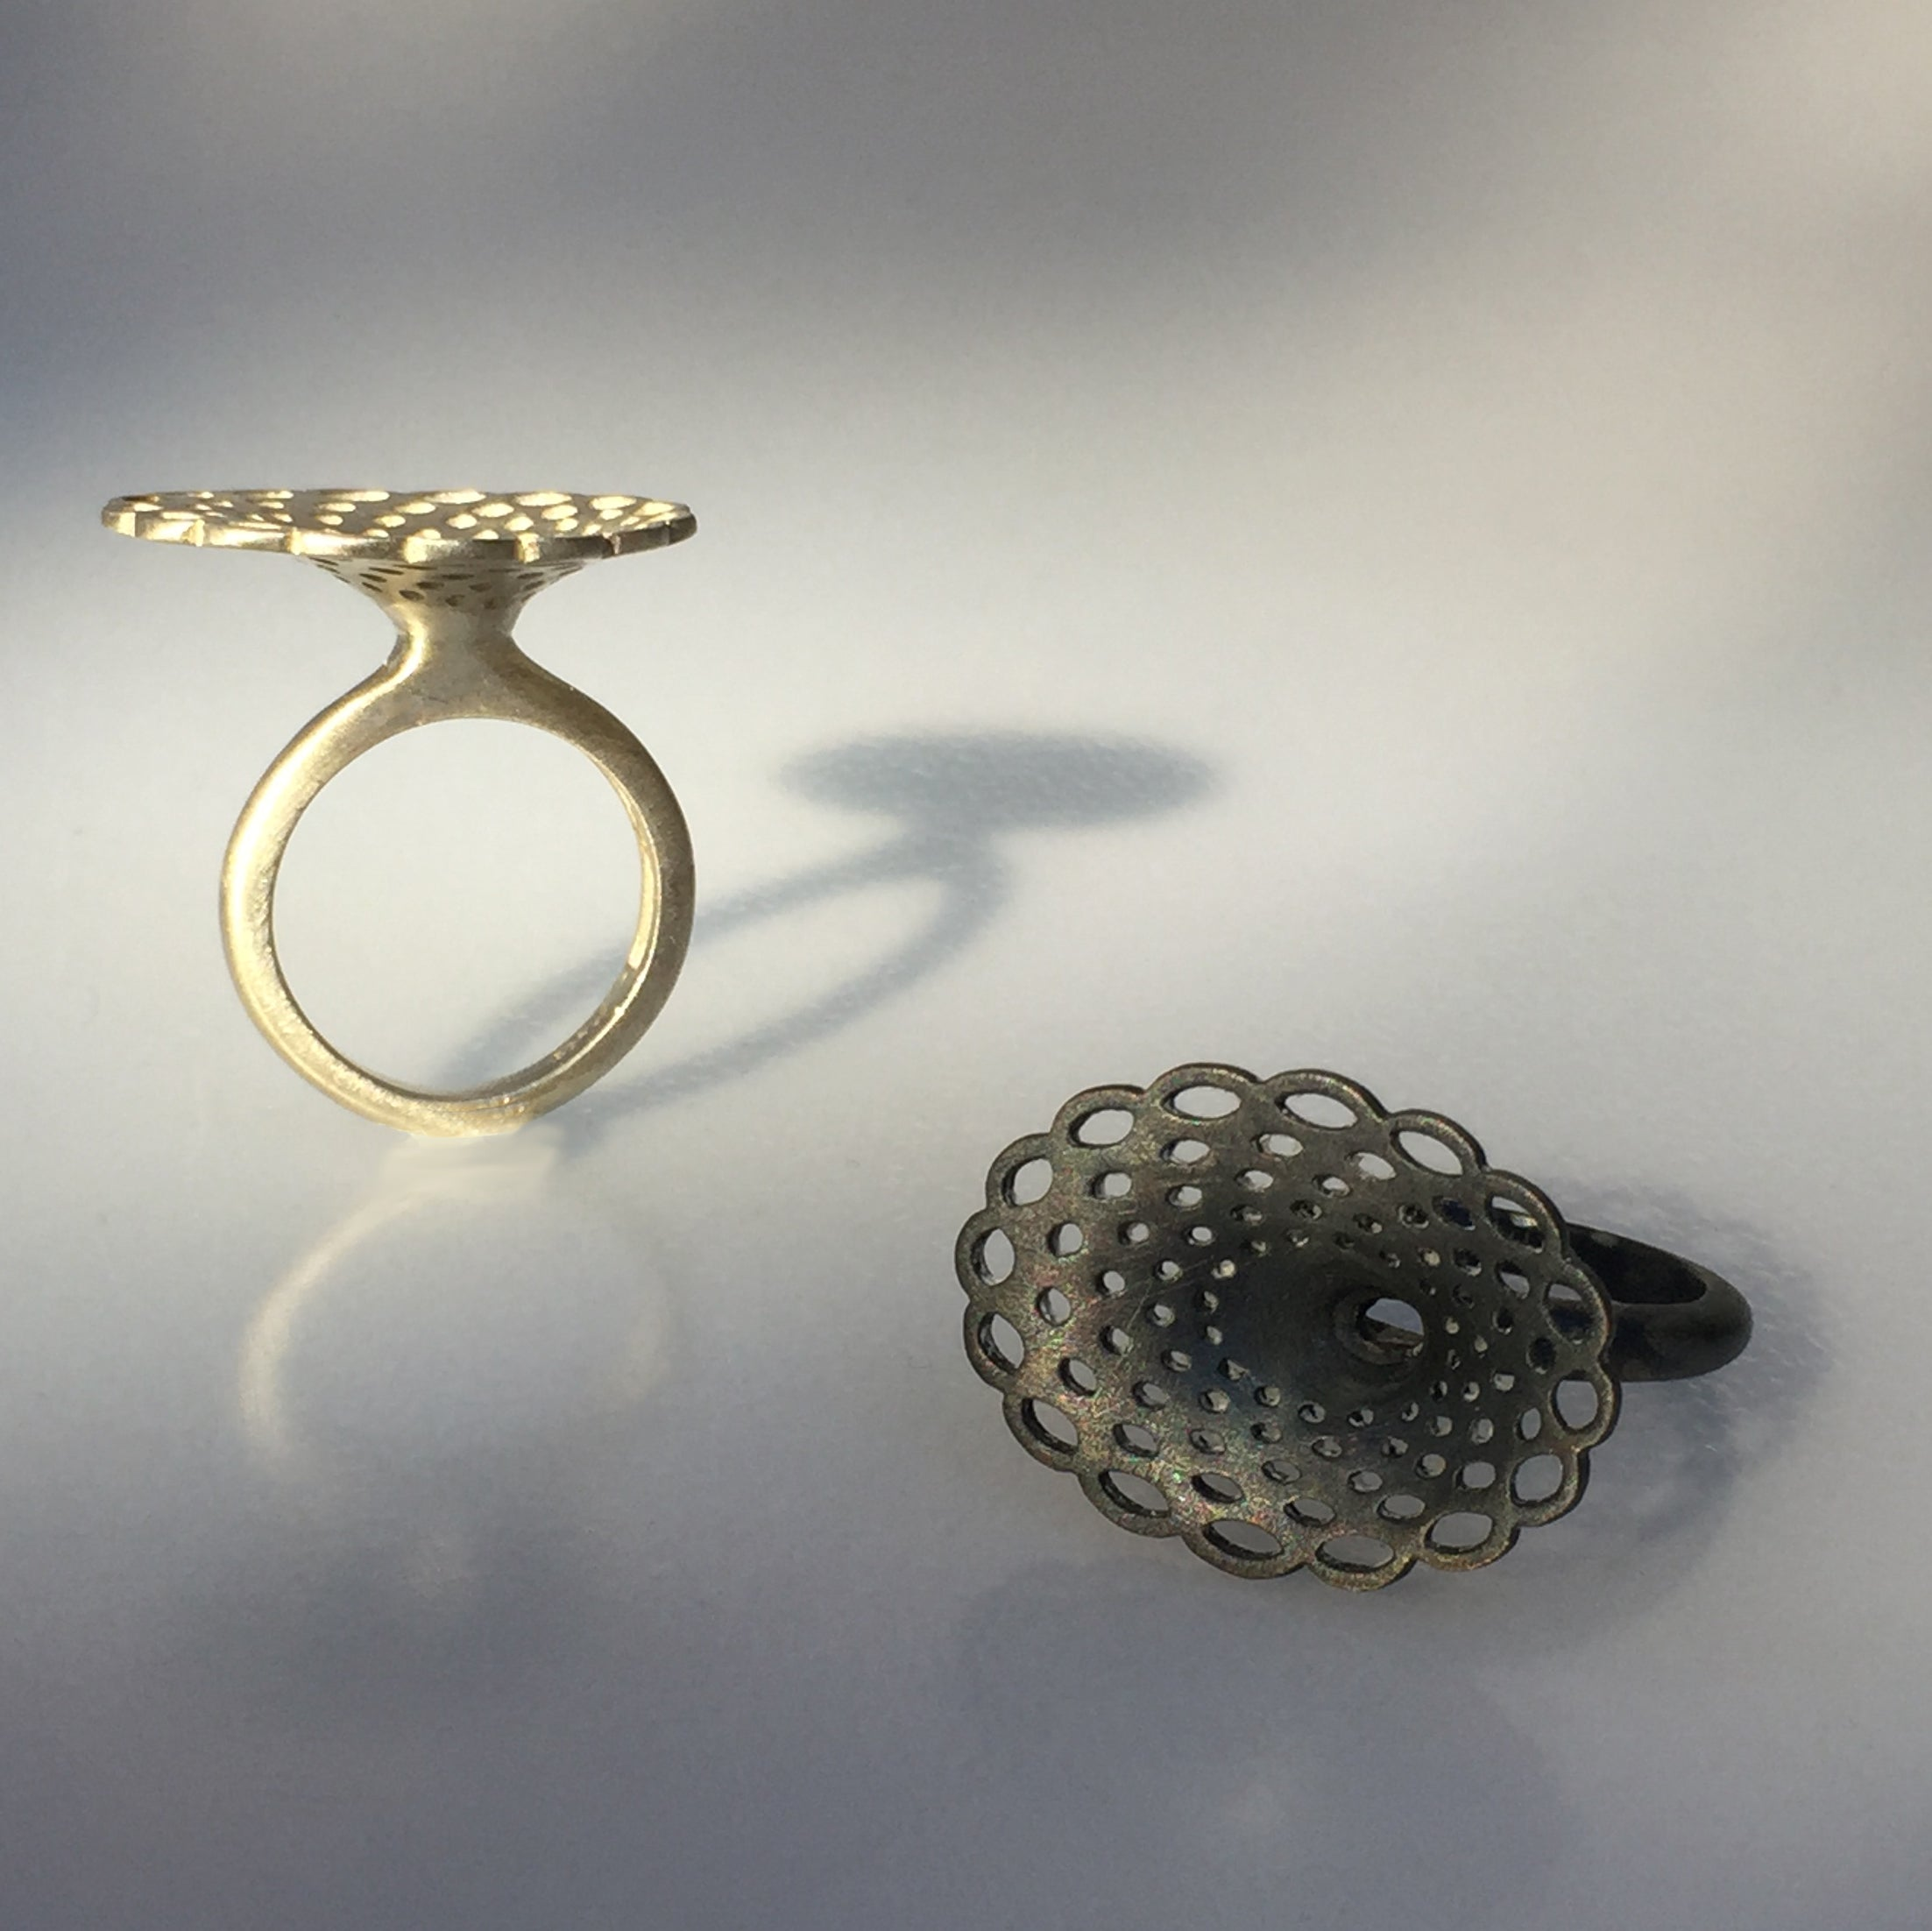 Doily Oval Ring